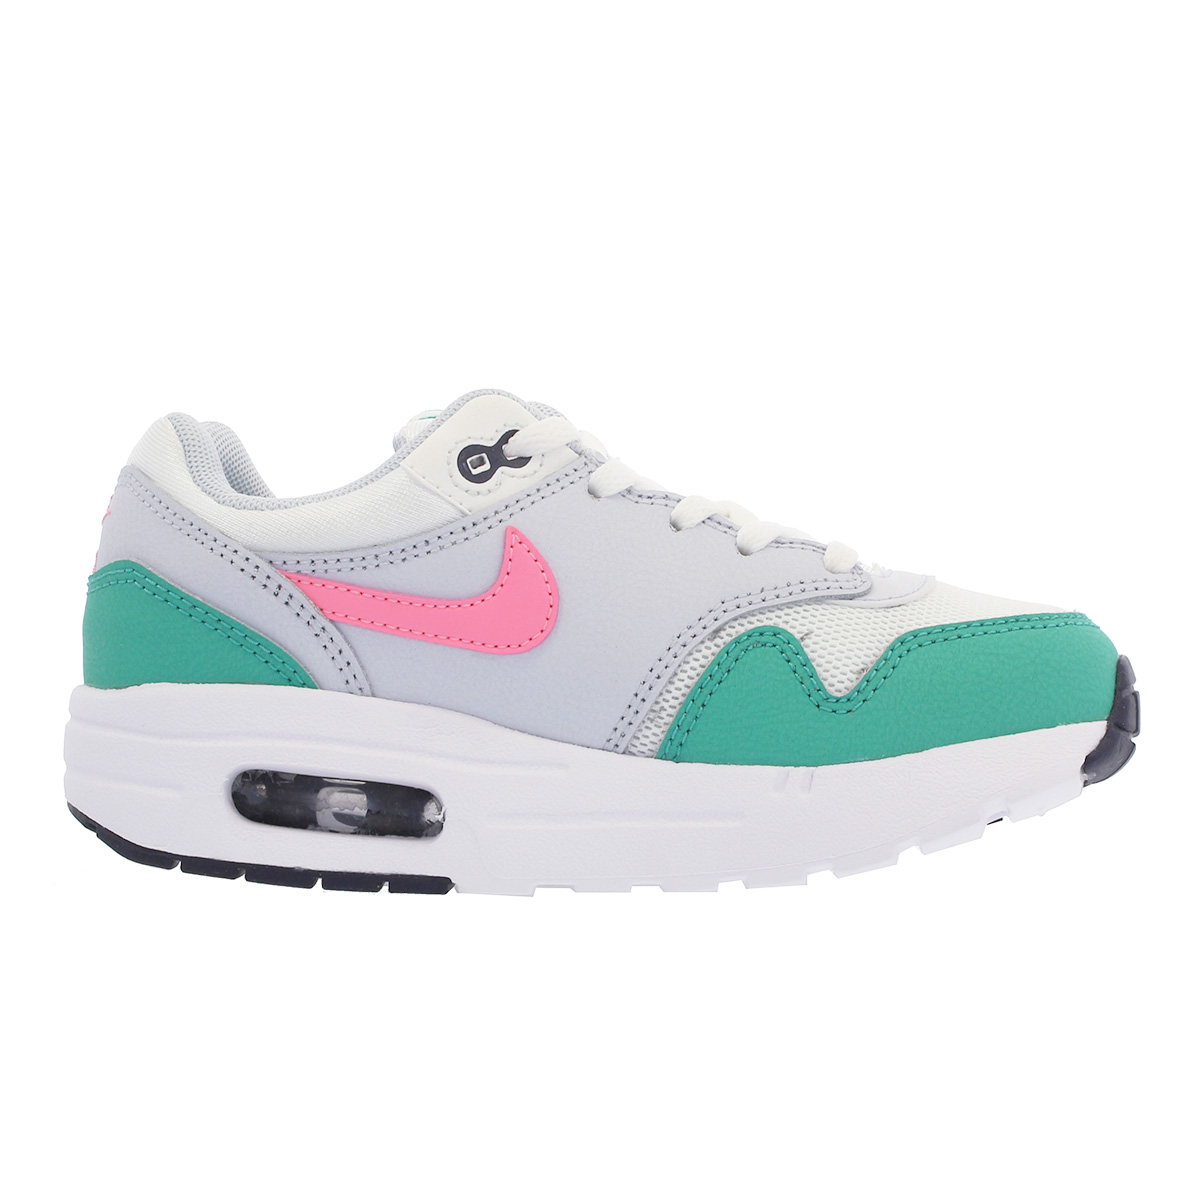 NIKE AIR MAX 1 PS Kie Ney AMAX 1 PS SUMMIT WHITESUNSET PULSEKINETIC GREEN 807,603 105